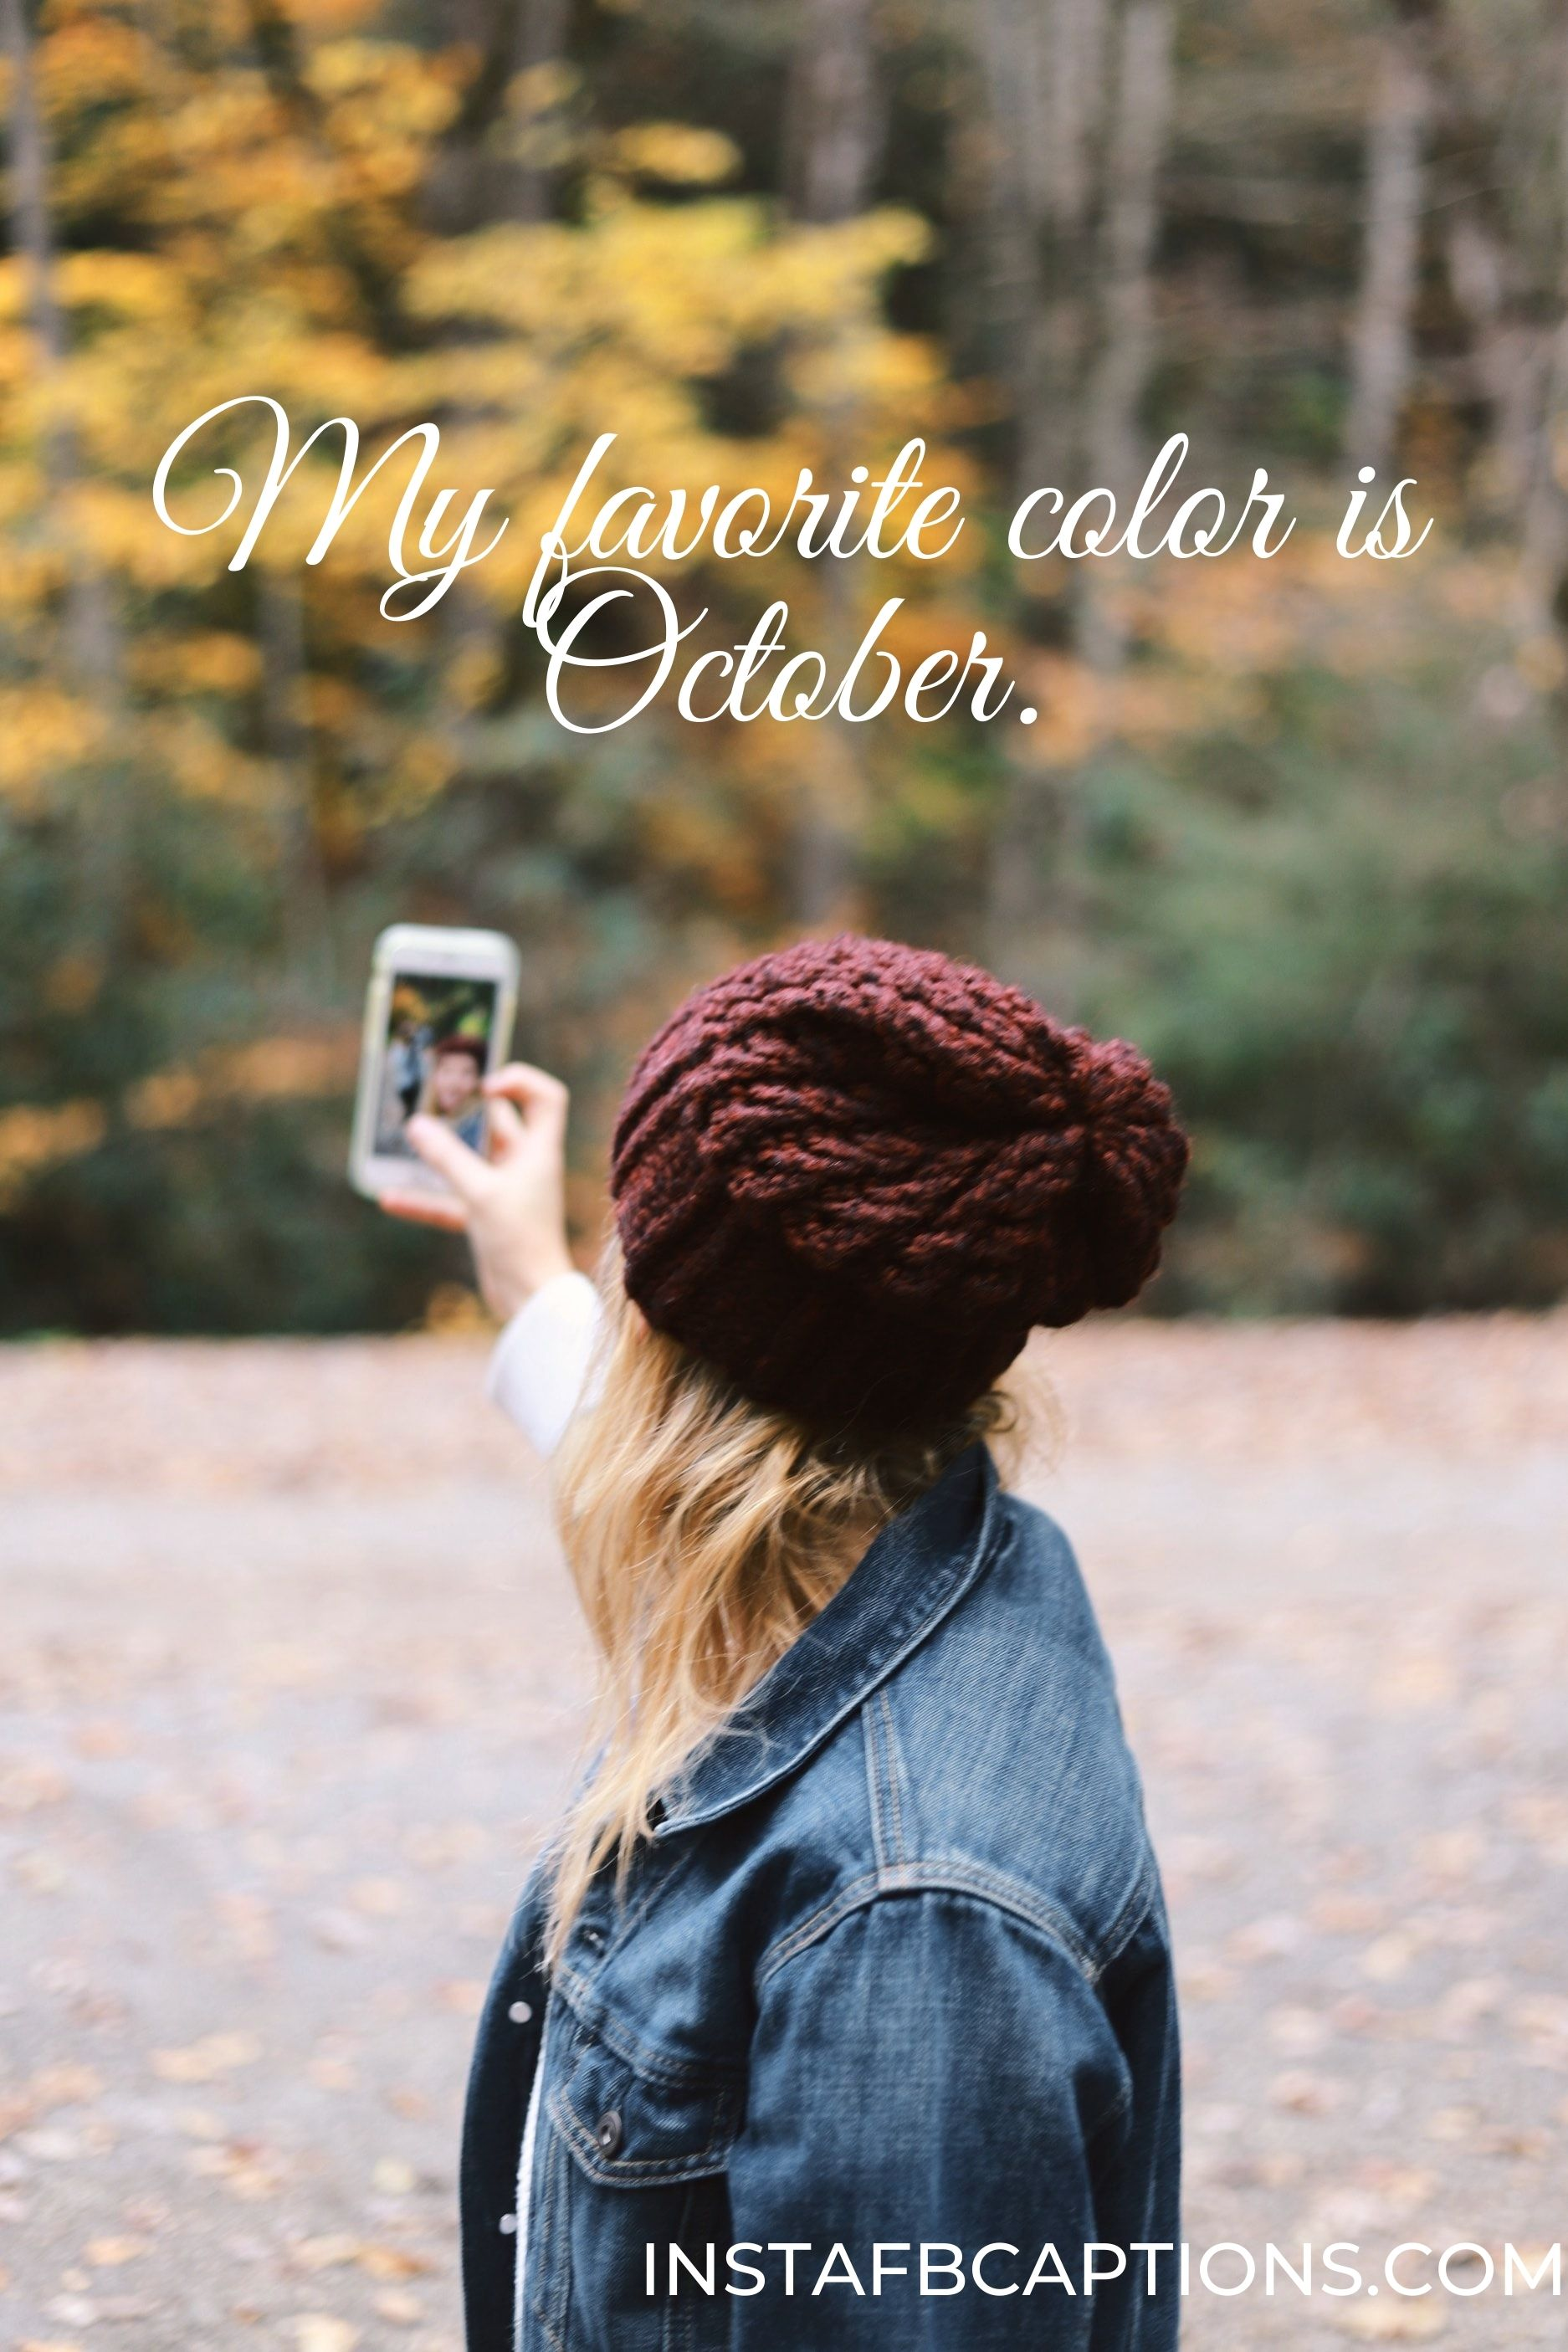 Fall Selfie Captions  - Fall Selfie Captions - 120+ FALL Instagram Captions for AUTUMN 2021